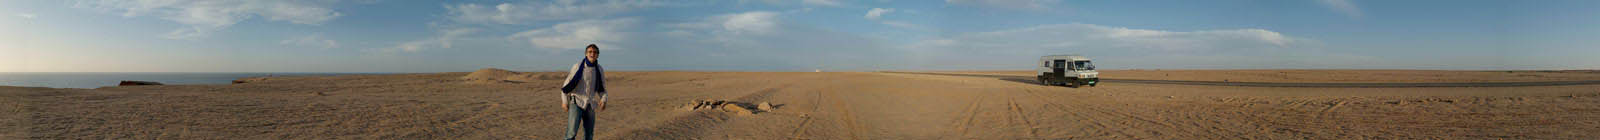 Western Sahara Panorama, road, desert, sea, MB307